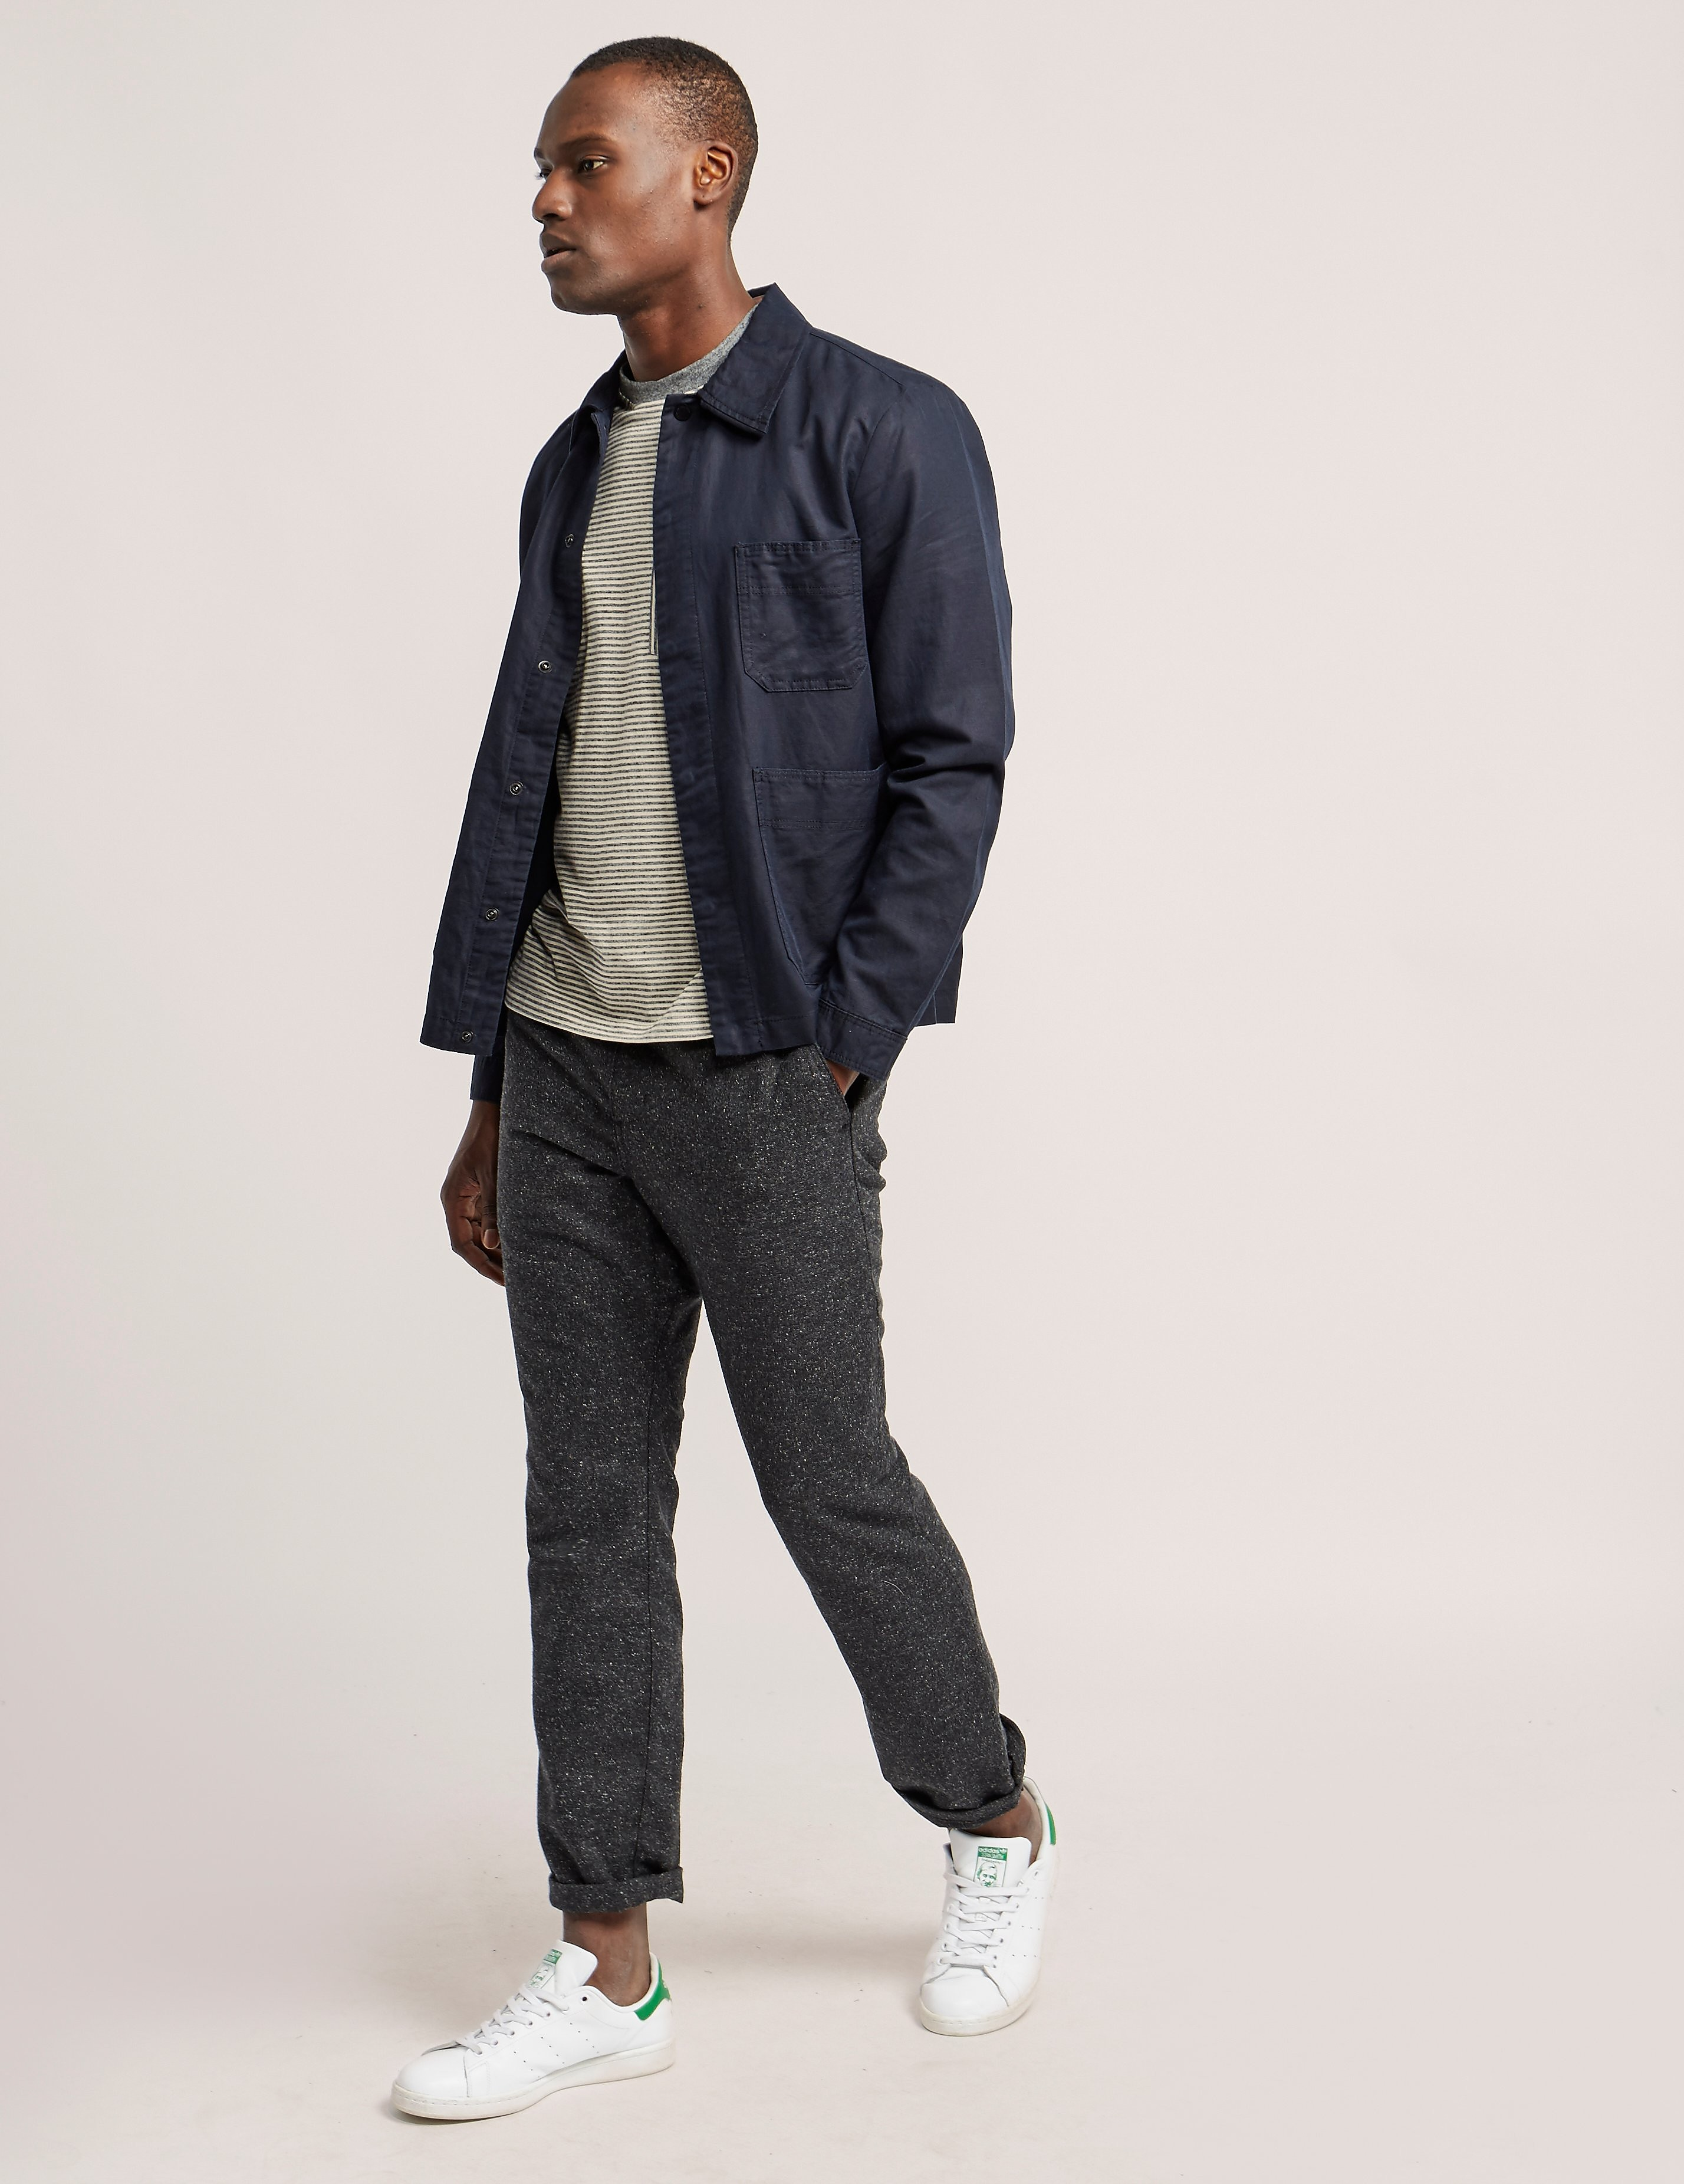 Paul Smith Cotton Twill Chore Light Jacket